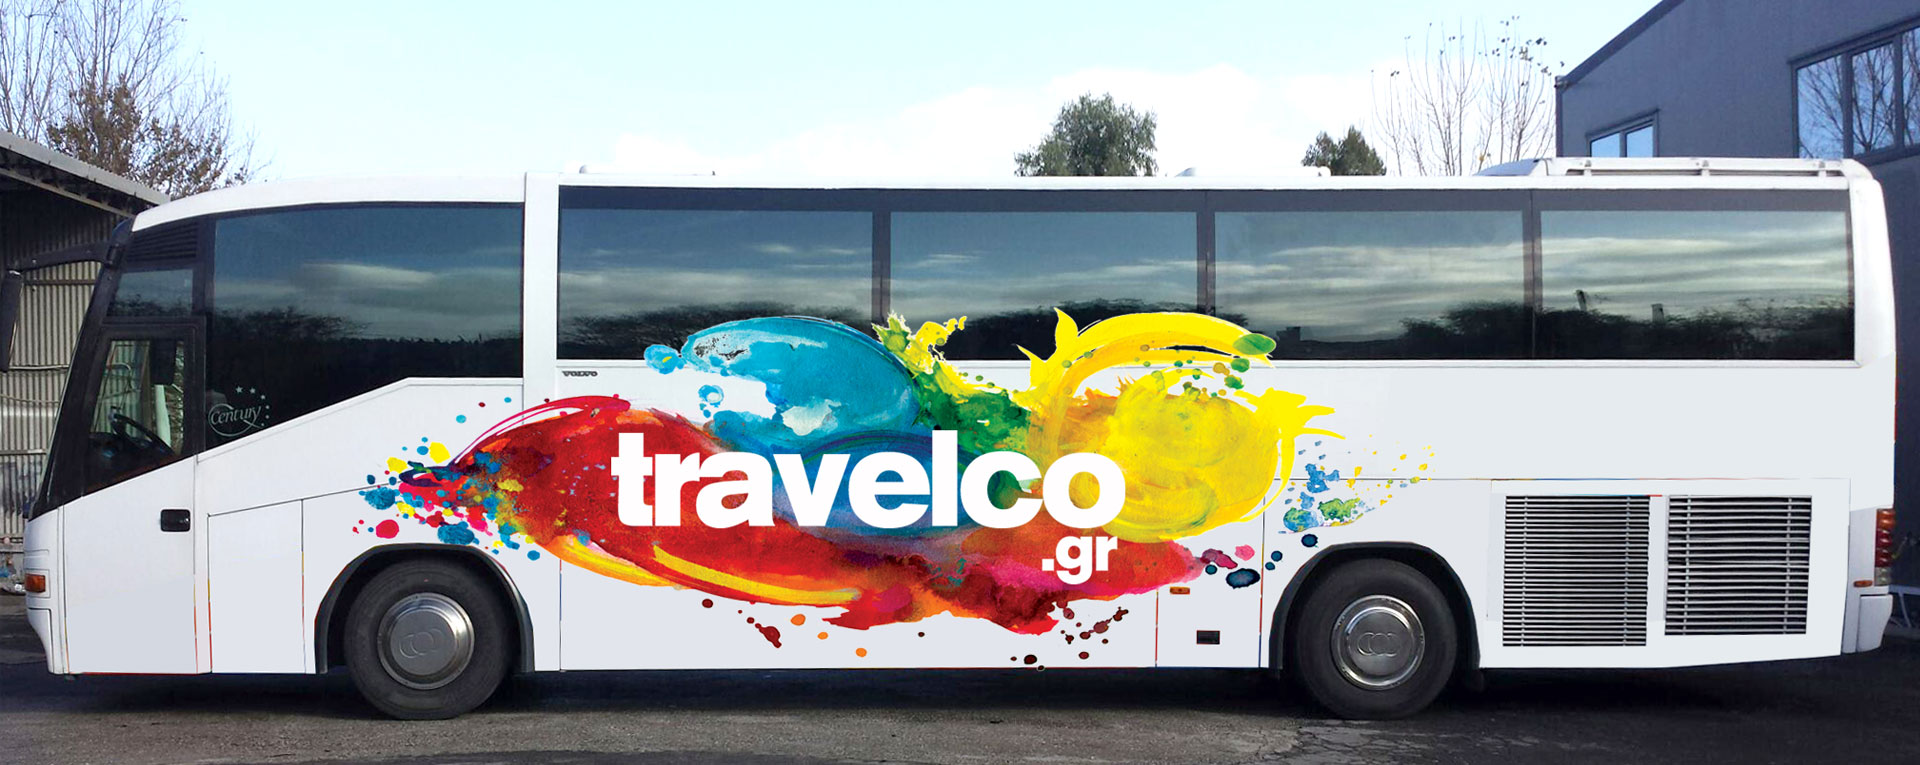 Travelco bus